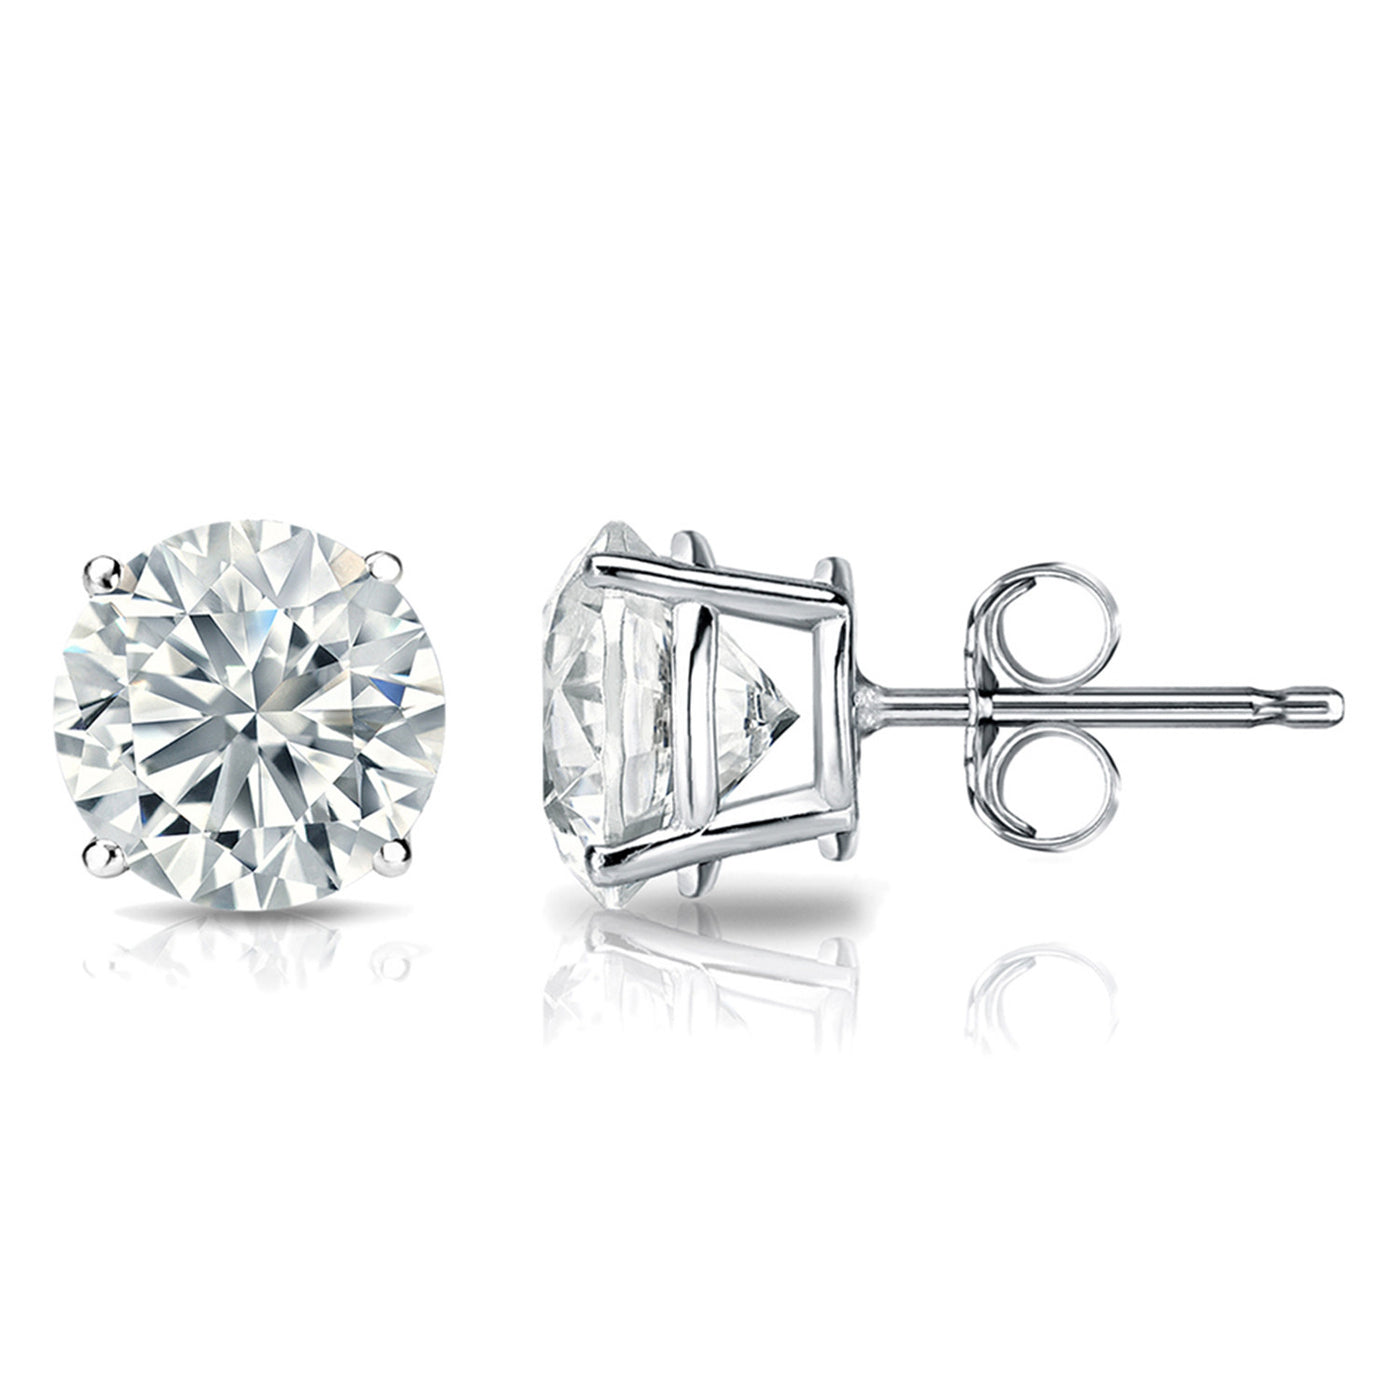 3/4 Carat Round 14k White Gold 4 Prong Basket Set Diamond Solitaire Stud Earrings (Signature Quality)